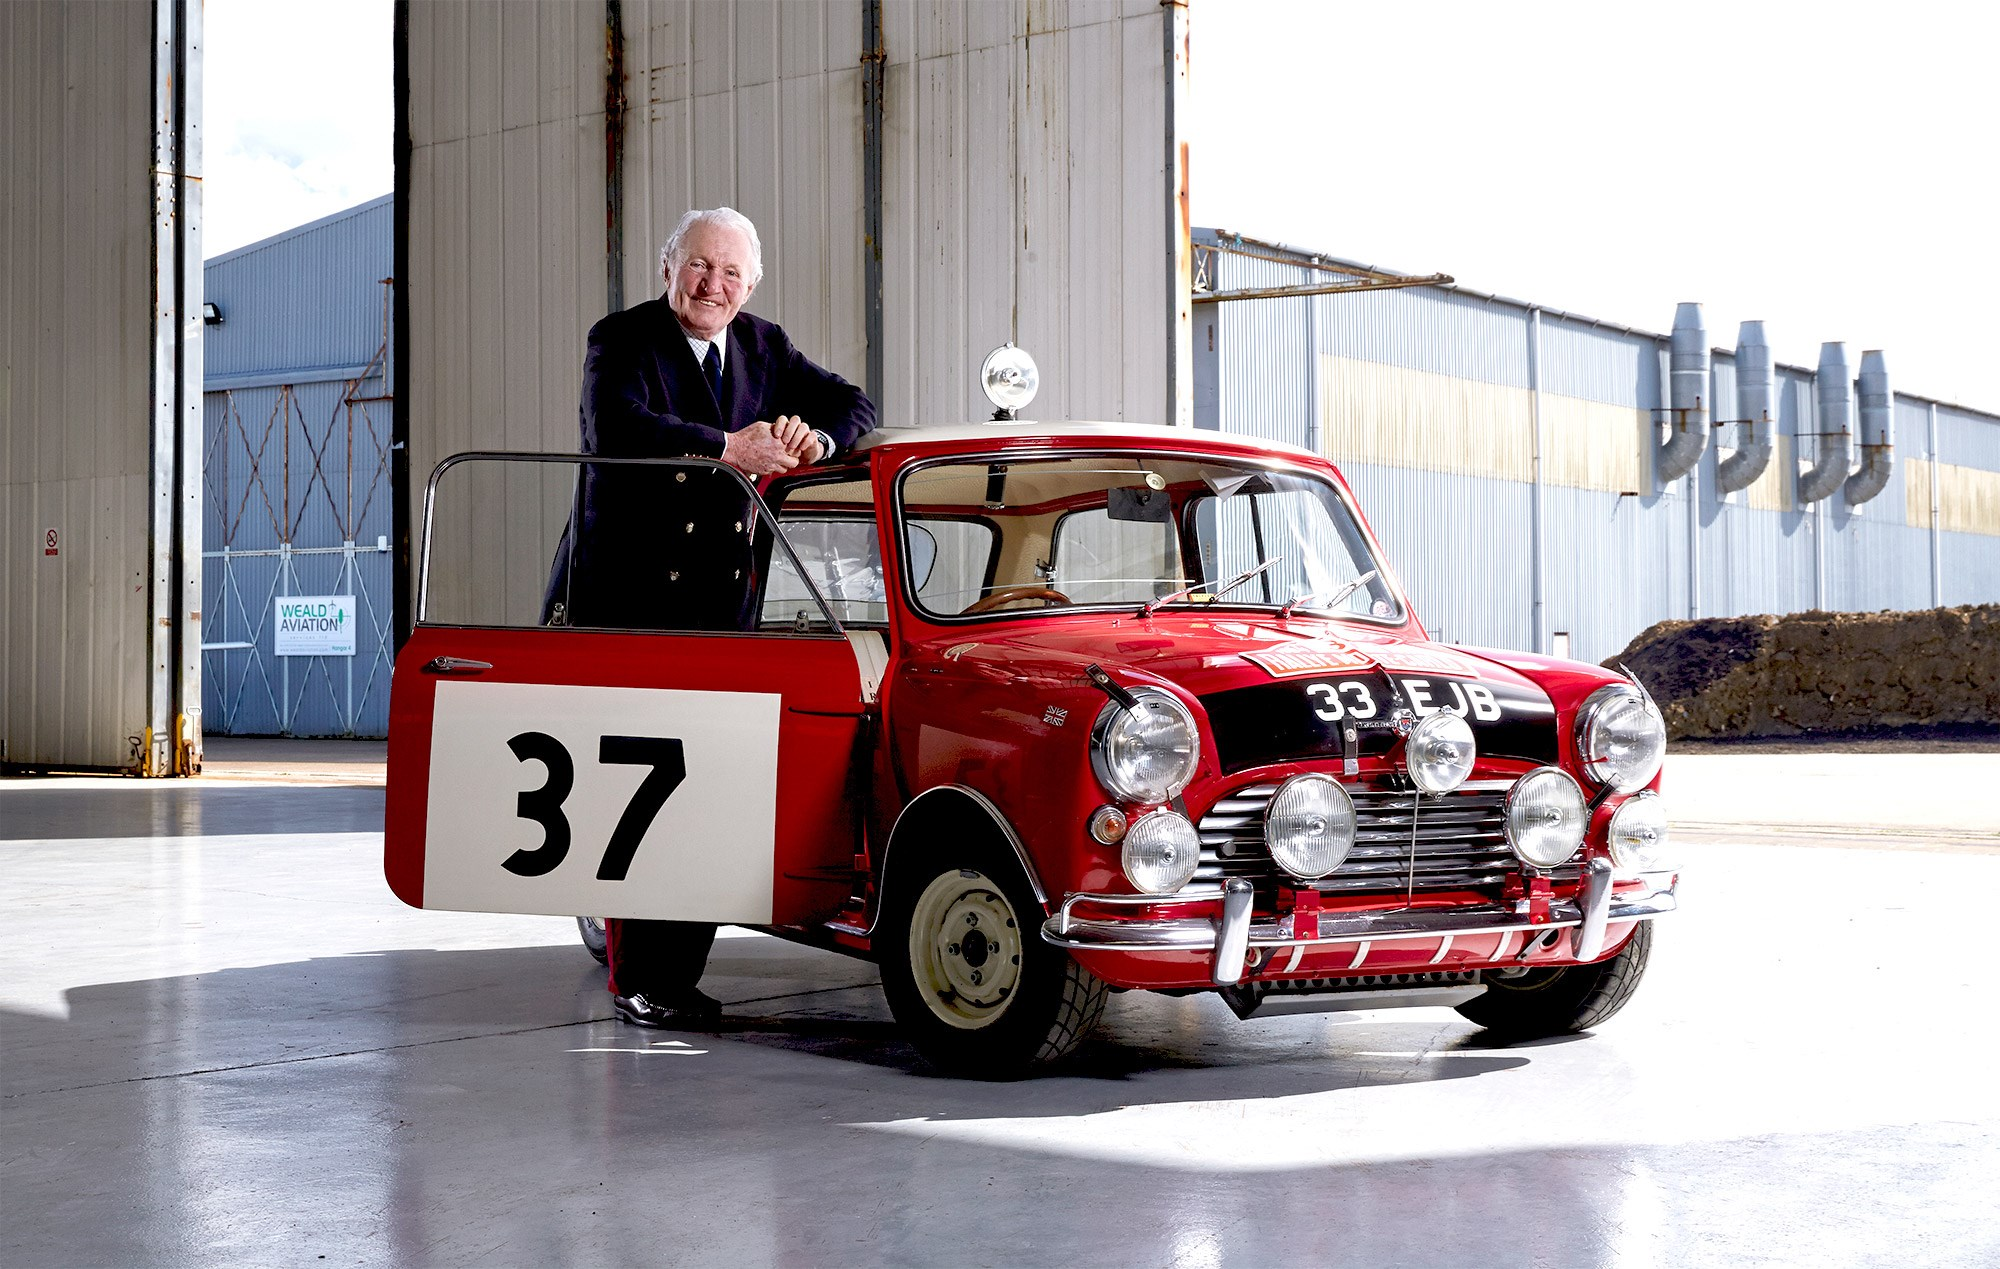 Paddy Hopkirk on his rallying career and that Monte Carlo win by ...